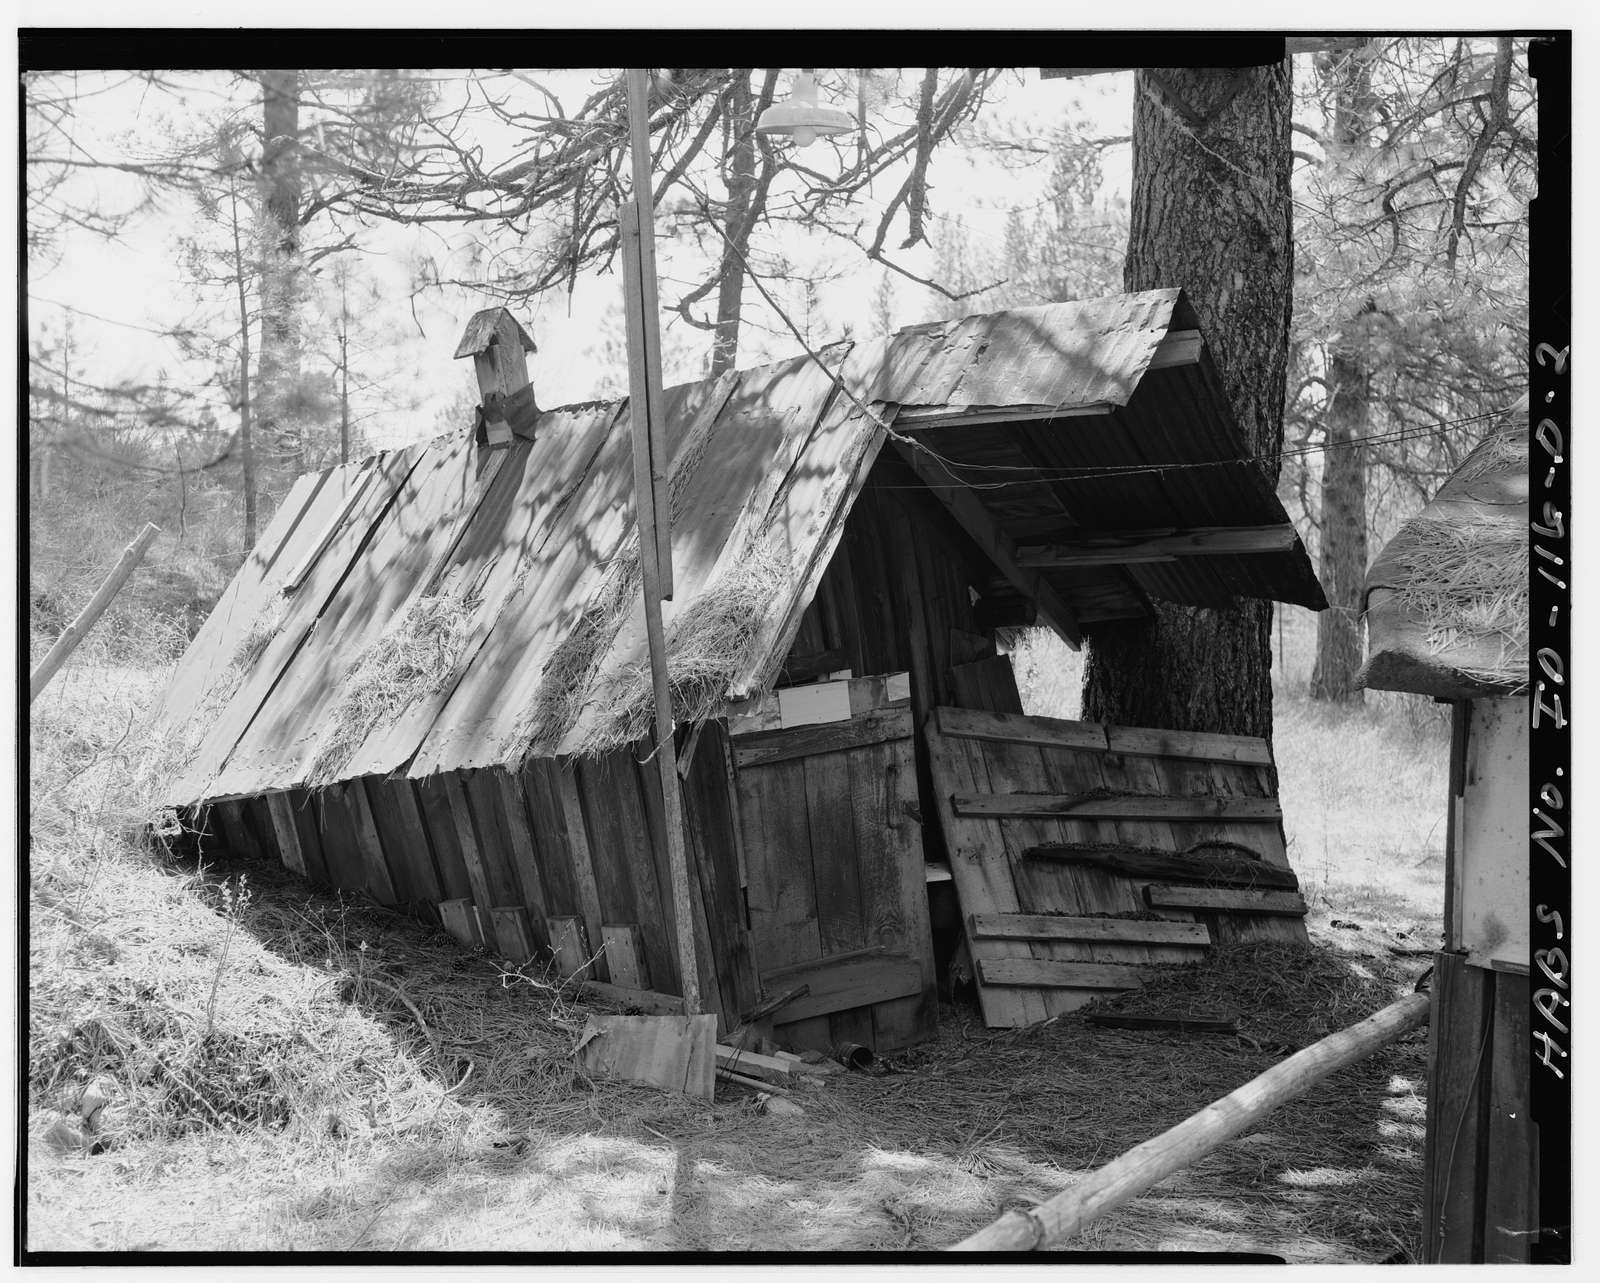 McKenzie Property, Root Cellar, North Bank of Sailor Gulch, 750 feet northwest of intersection of U.S.F.S. Roads 651 & 349, Placerville, Boise County, ID